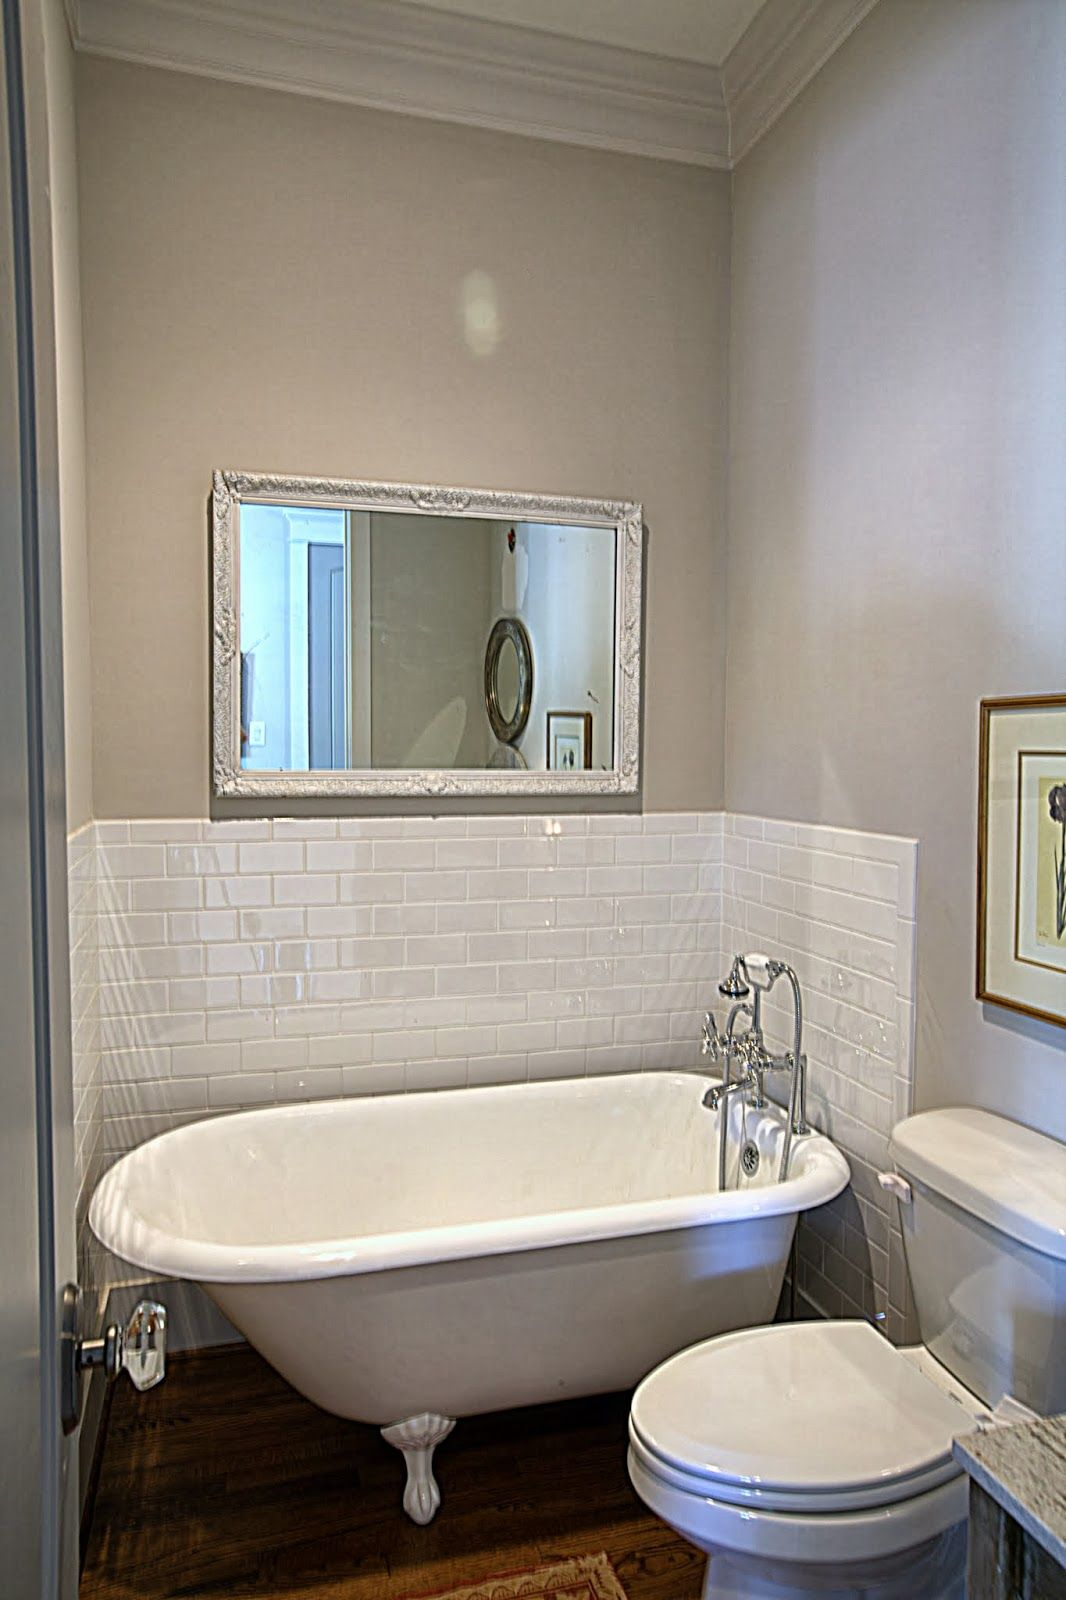 images of small bathrooms with clawfoot tubs mycoffeepot org rh mycoffeepot org